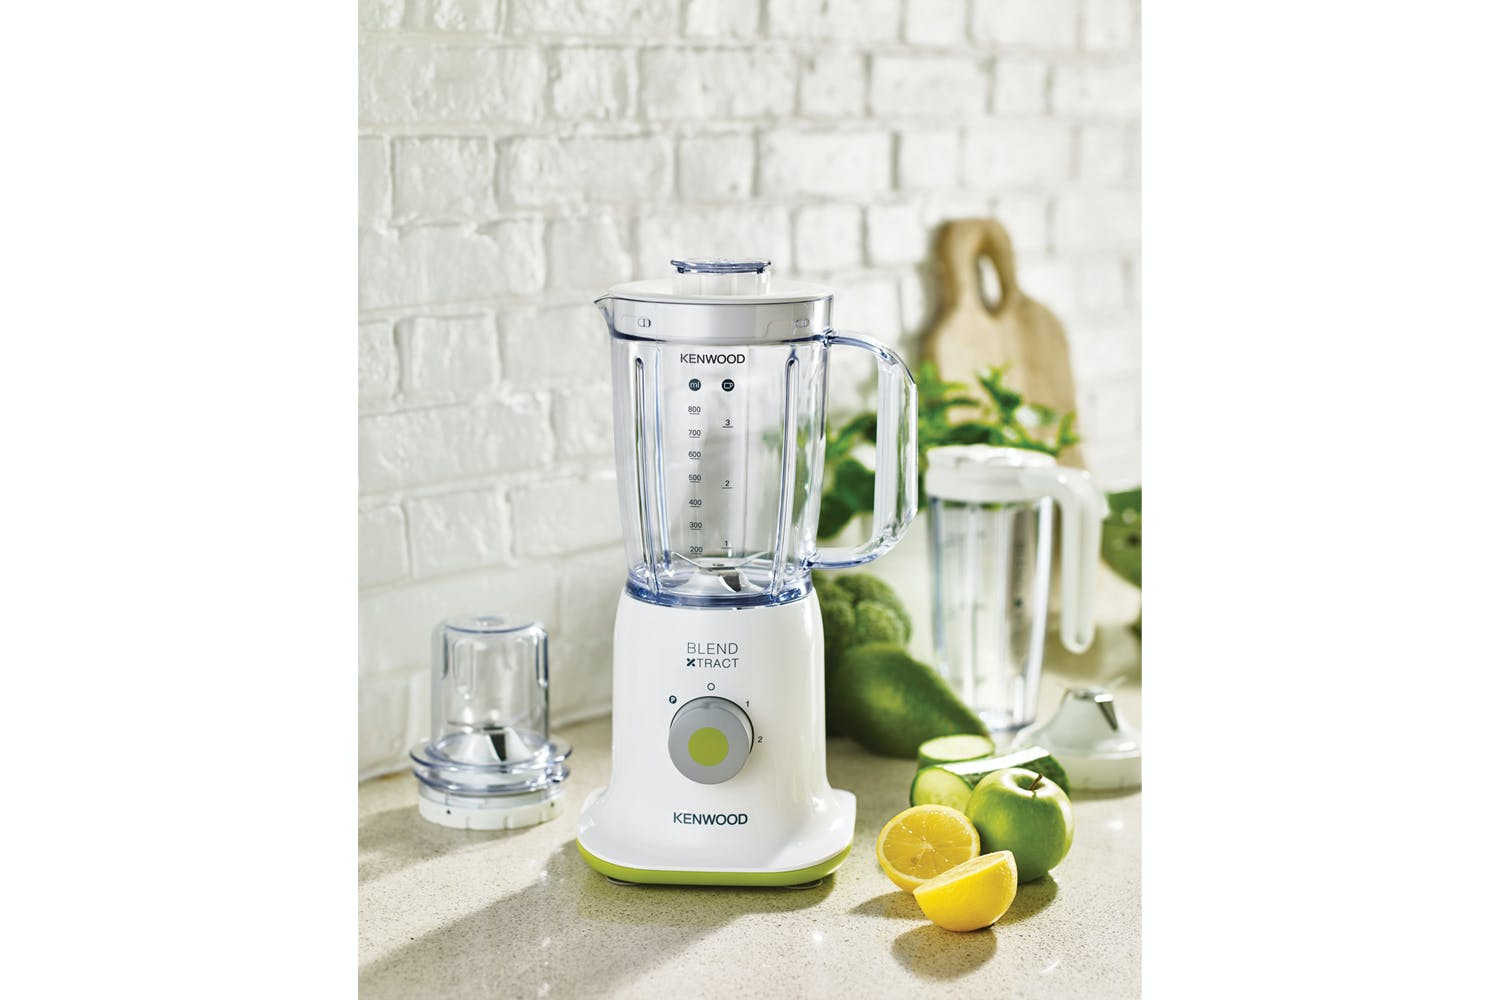 Kenwood Blend Xtract 3-in-1 Blender | BL237